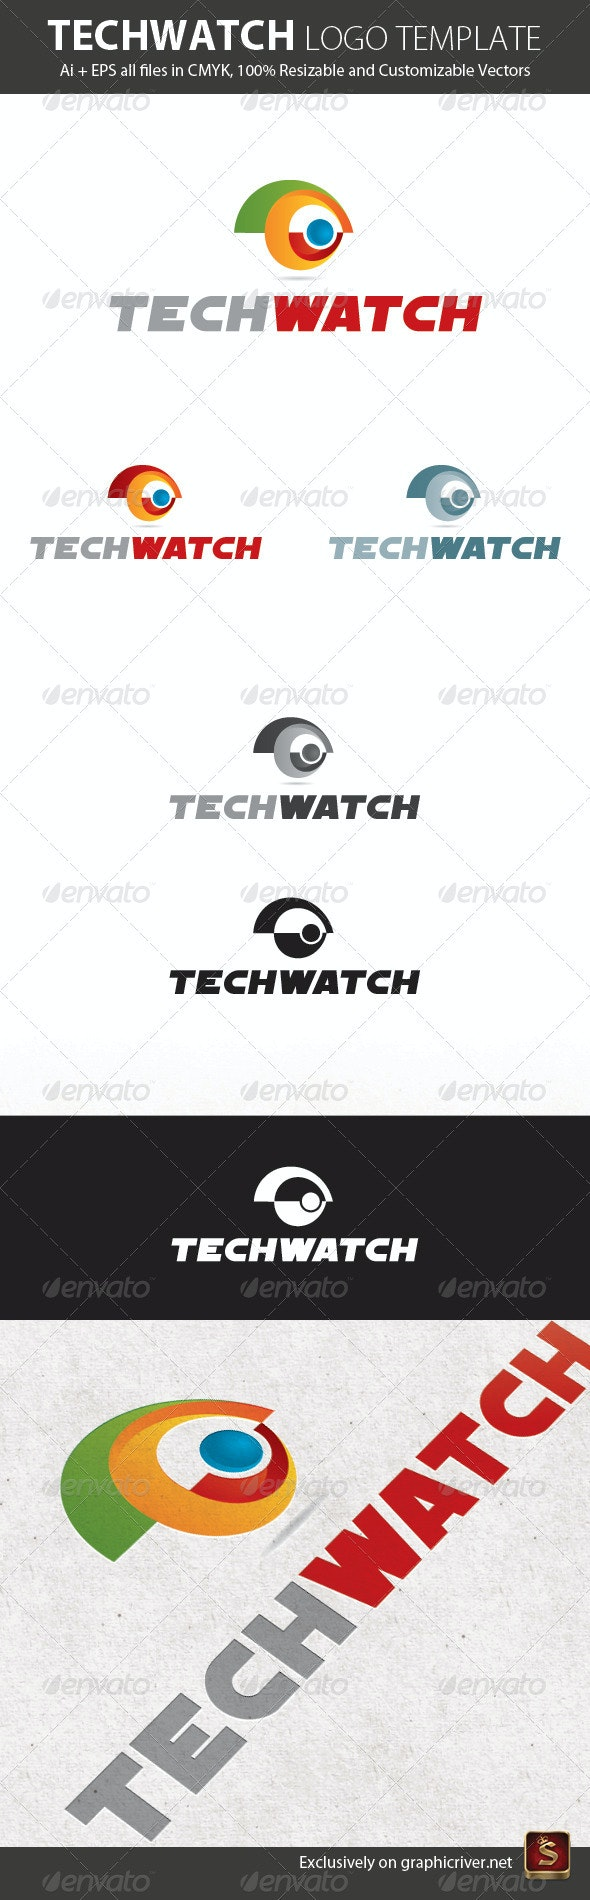 Tech Watch Logo Template - Vector Abstract